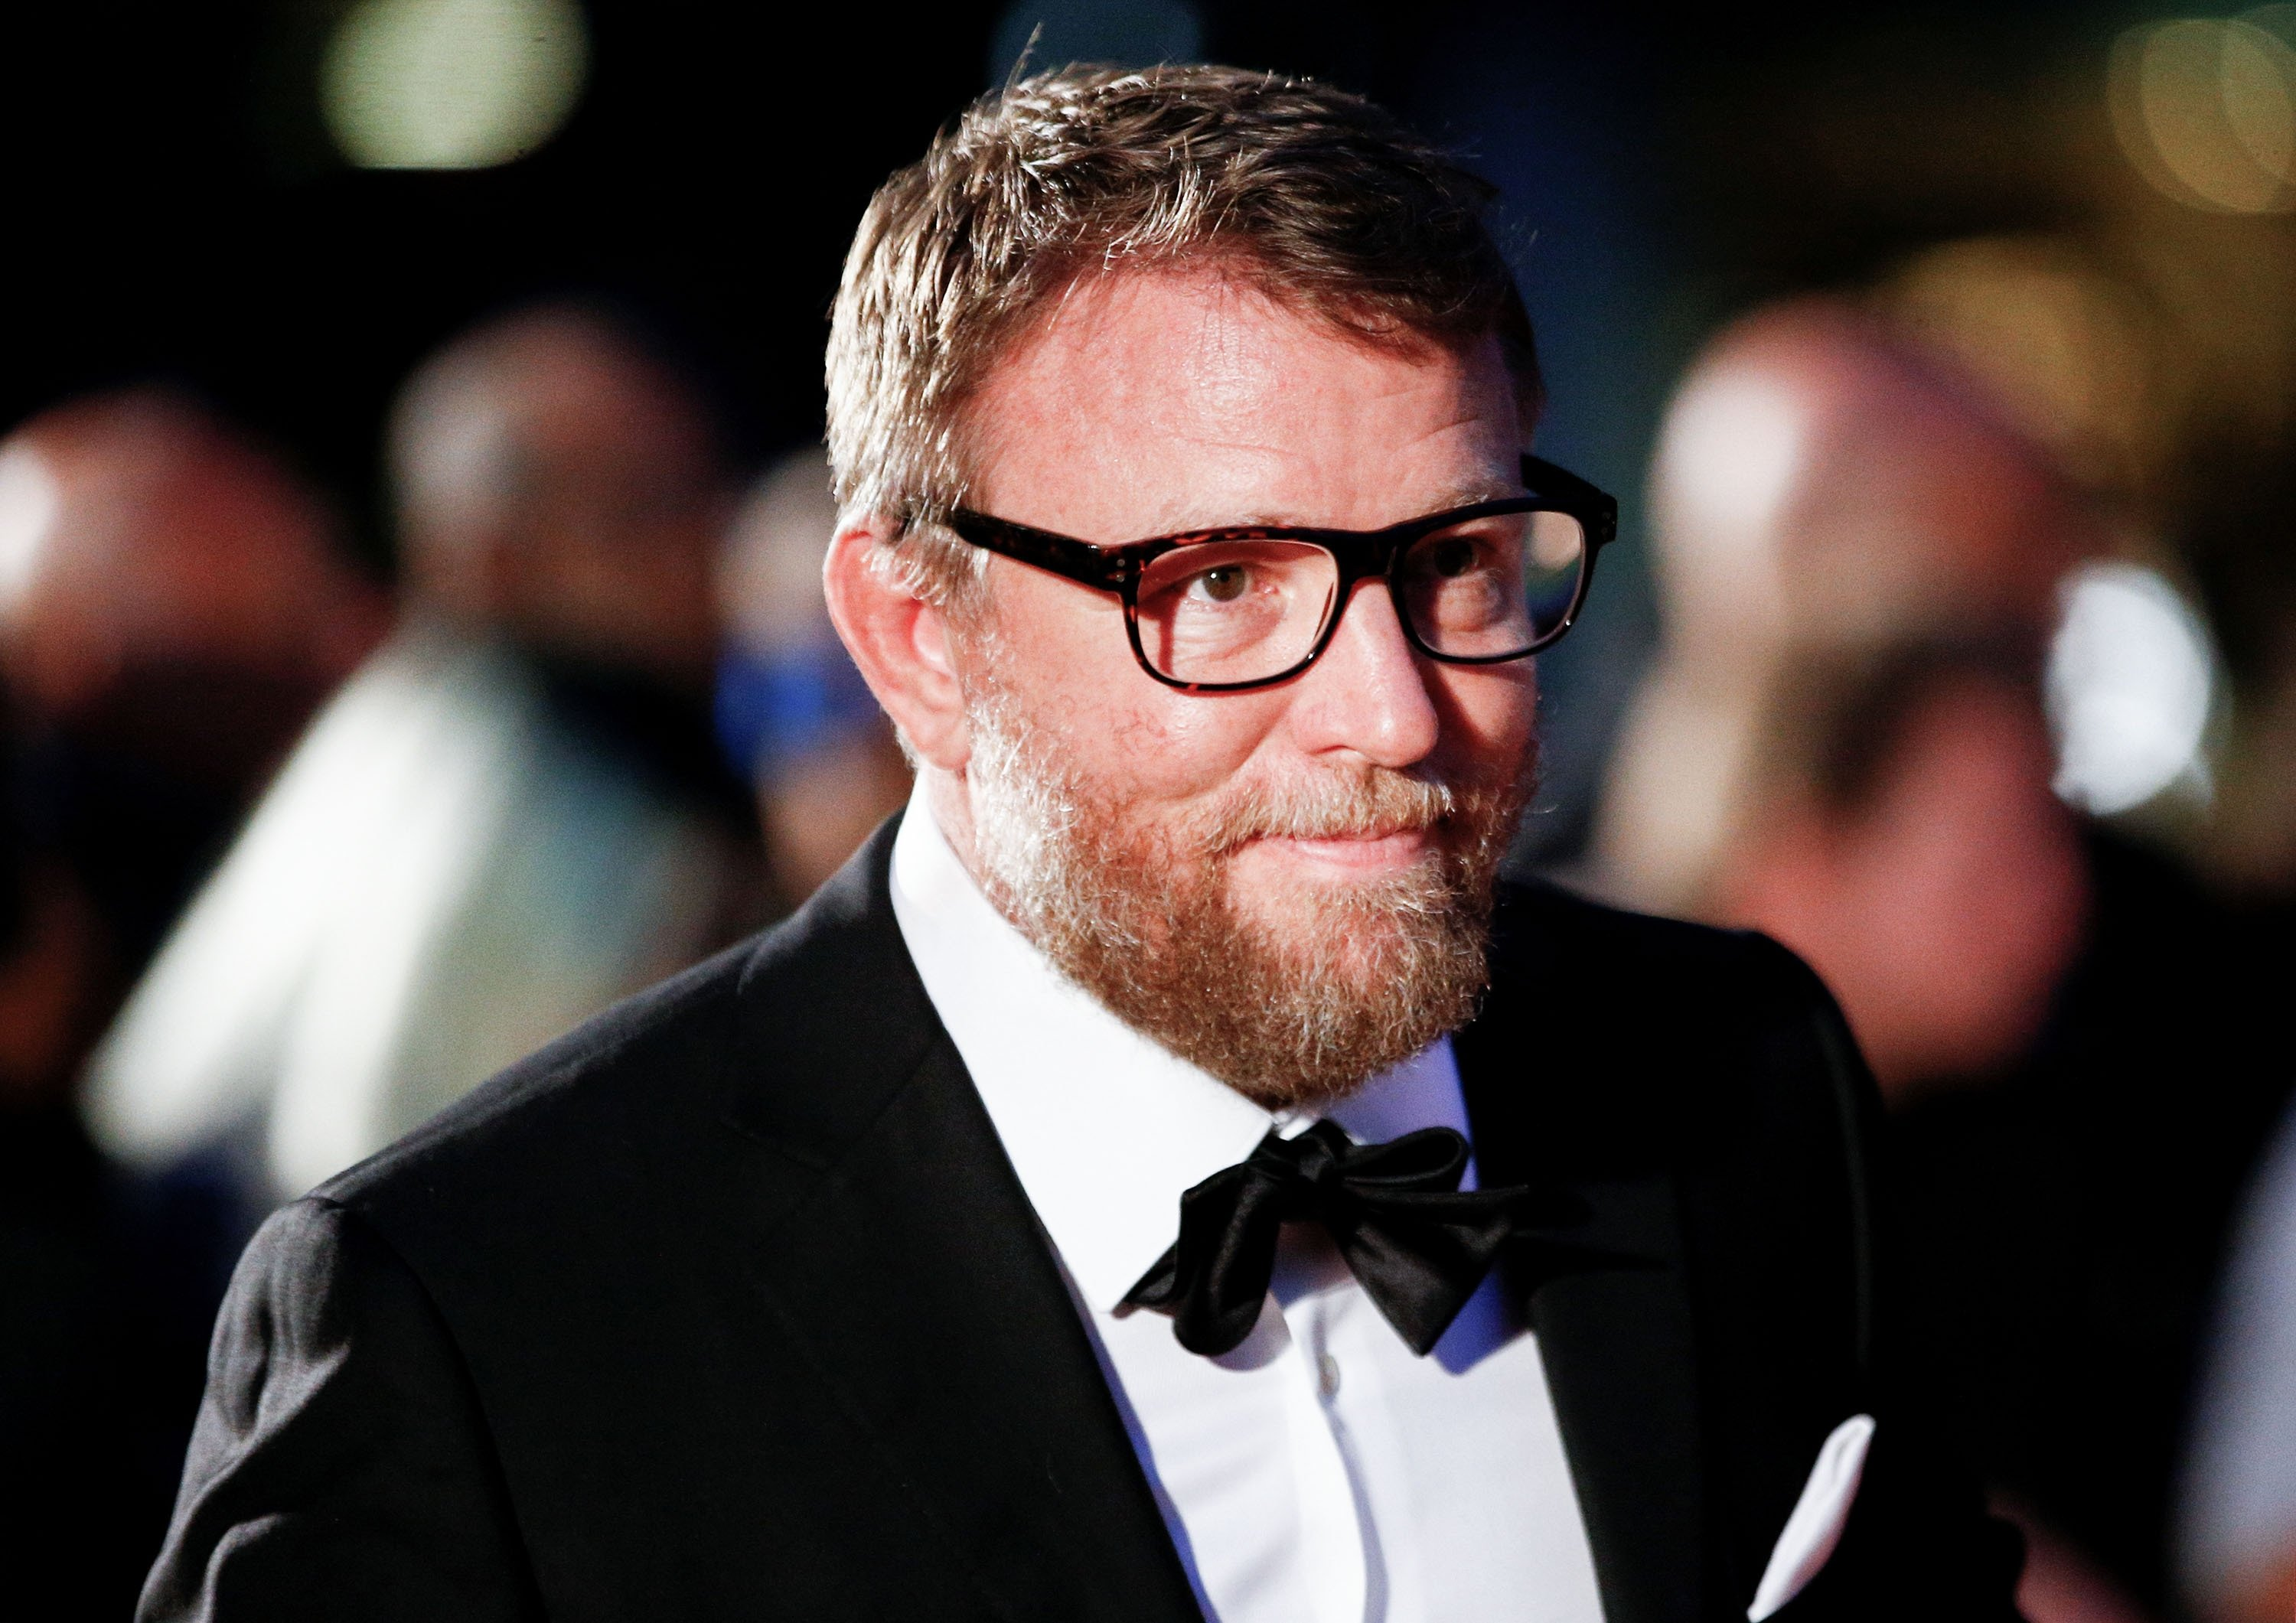 Director Guy Ritchie arrives to the GQ Men Of The Year Awards 2019 in London, Britain, Sept. 3, 2019. (REUTERS PHOTO)